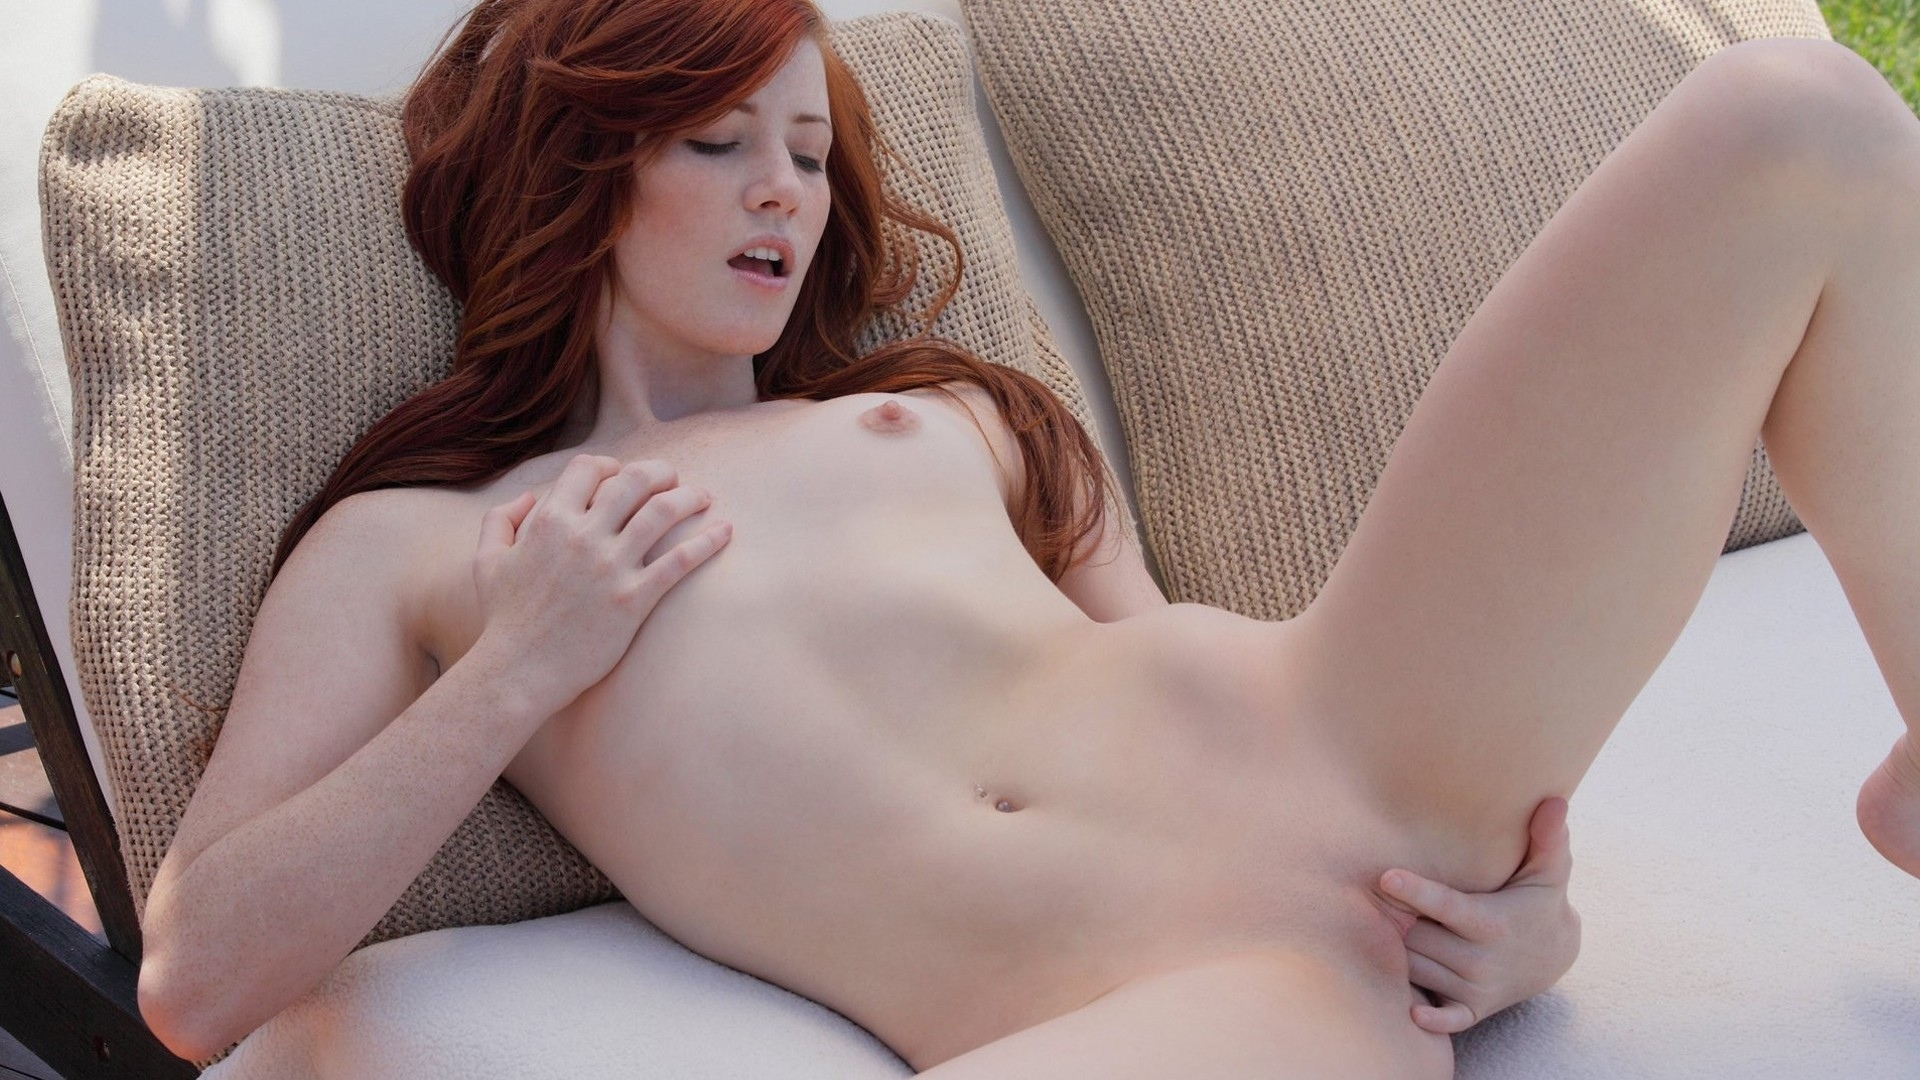 Beautiful Busty Redhead Iga Gets Nude On A Couch